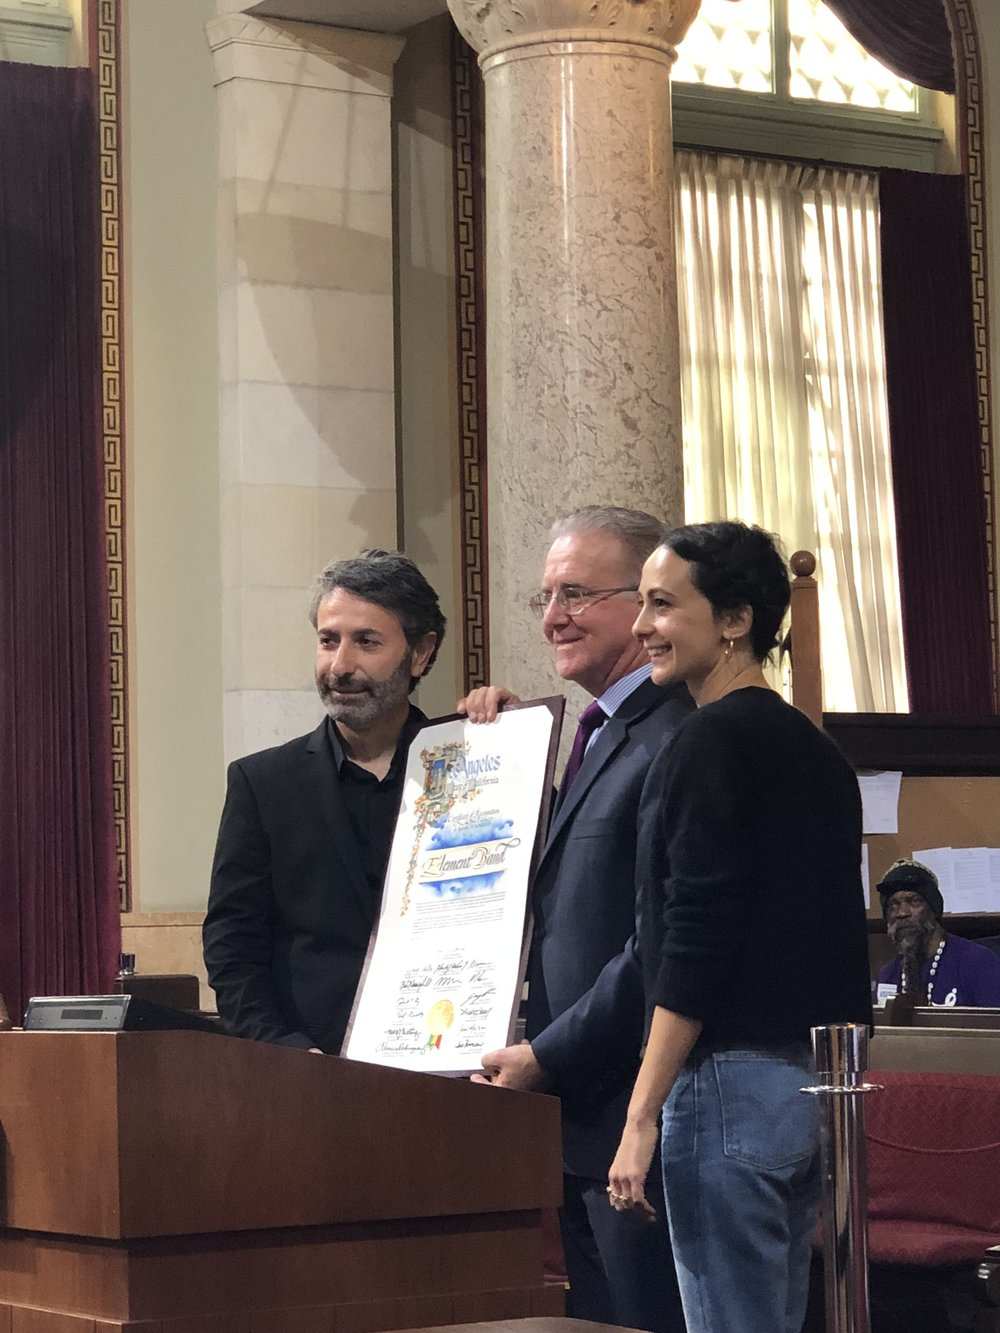 Element Band Honored by the City Of Los Angeles - The City of LA honored Element Band on April 30, 2019 for helping preserve Armenian music in our community and around the globe. Thank you council-member Paul Krekorian.